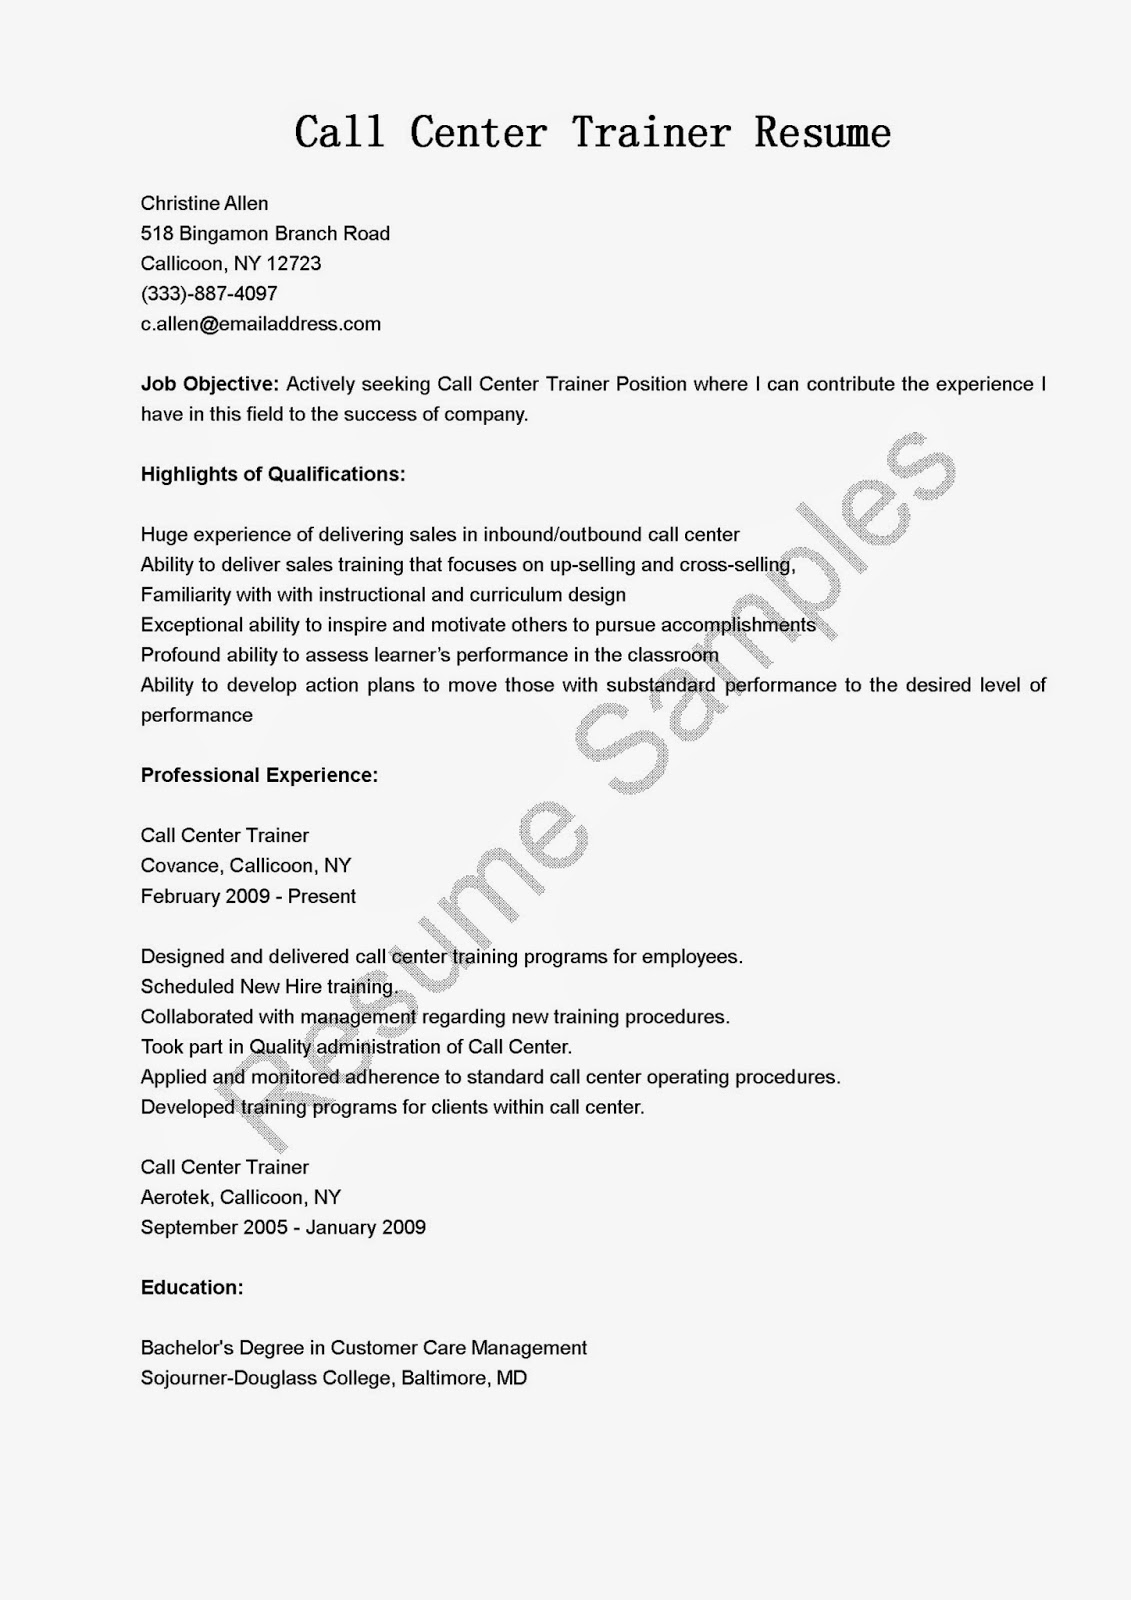 sample resume team leader bpo carpinteria rural friedrich template template marvellous sample resume format call center